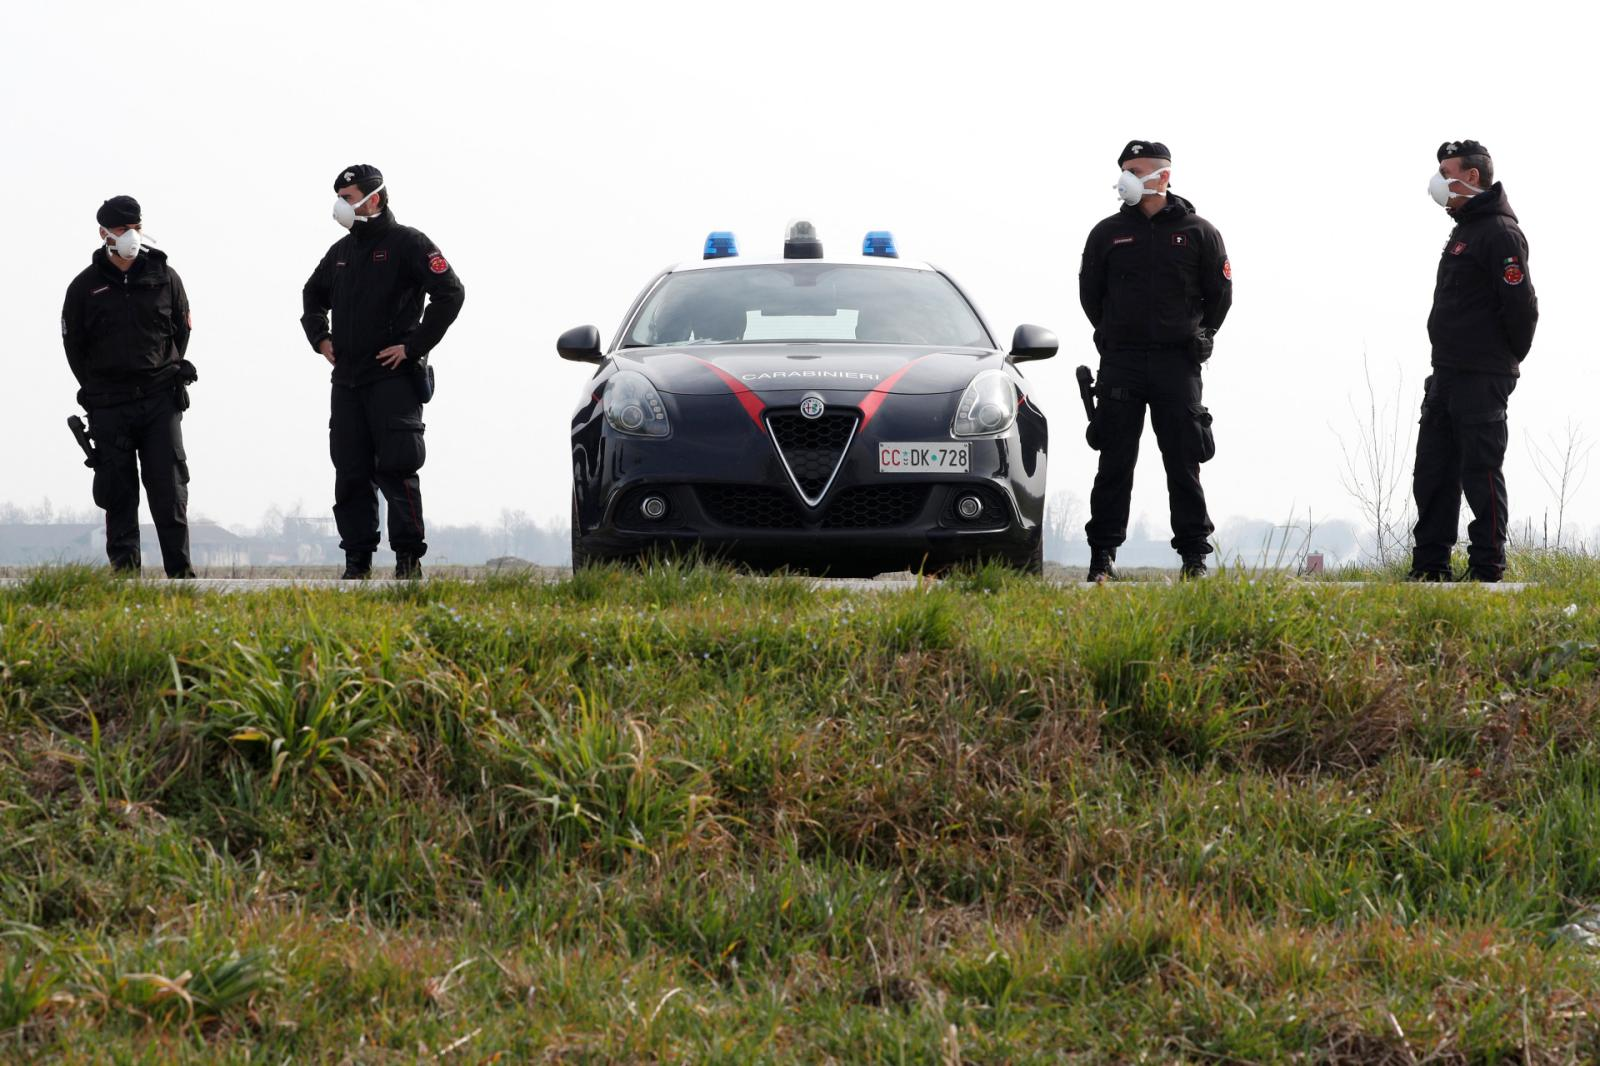 Carabinieri officers patrol outside the town of Castiglione D'Adda, which has been closed by the Italian government due to a coronavirus outbreak, Italy, February 23, 2020. REUTERS/Guglielmo Mangiapane